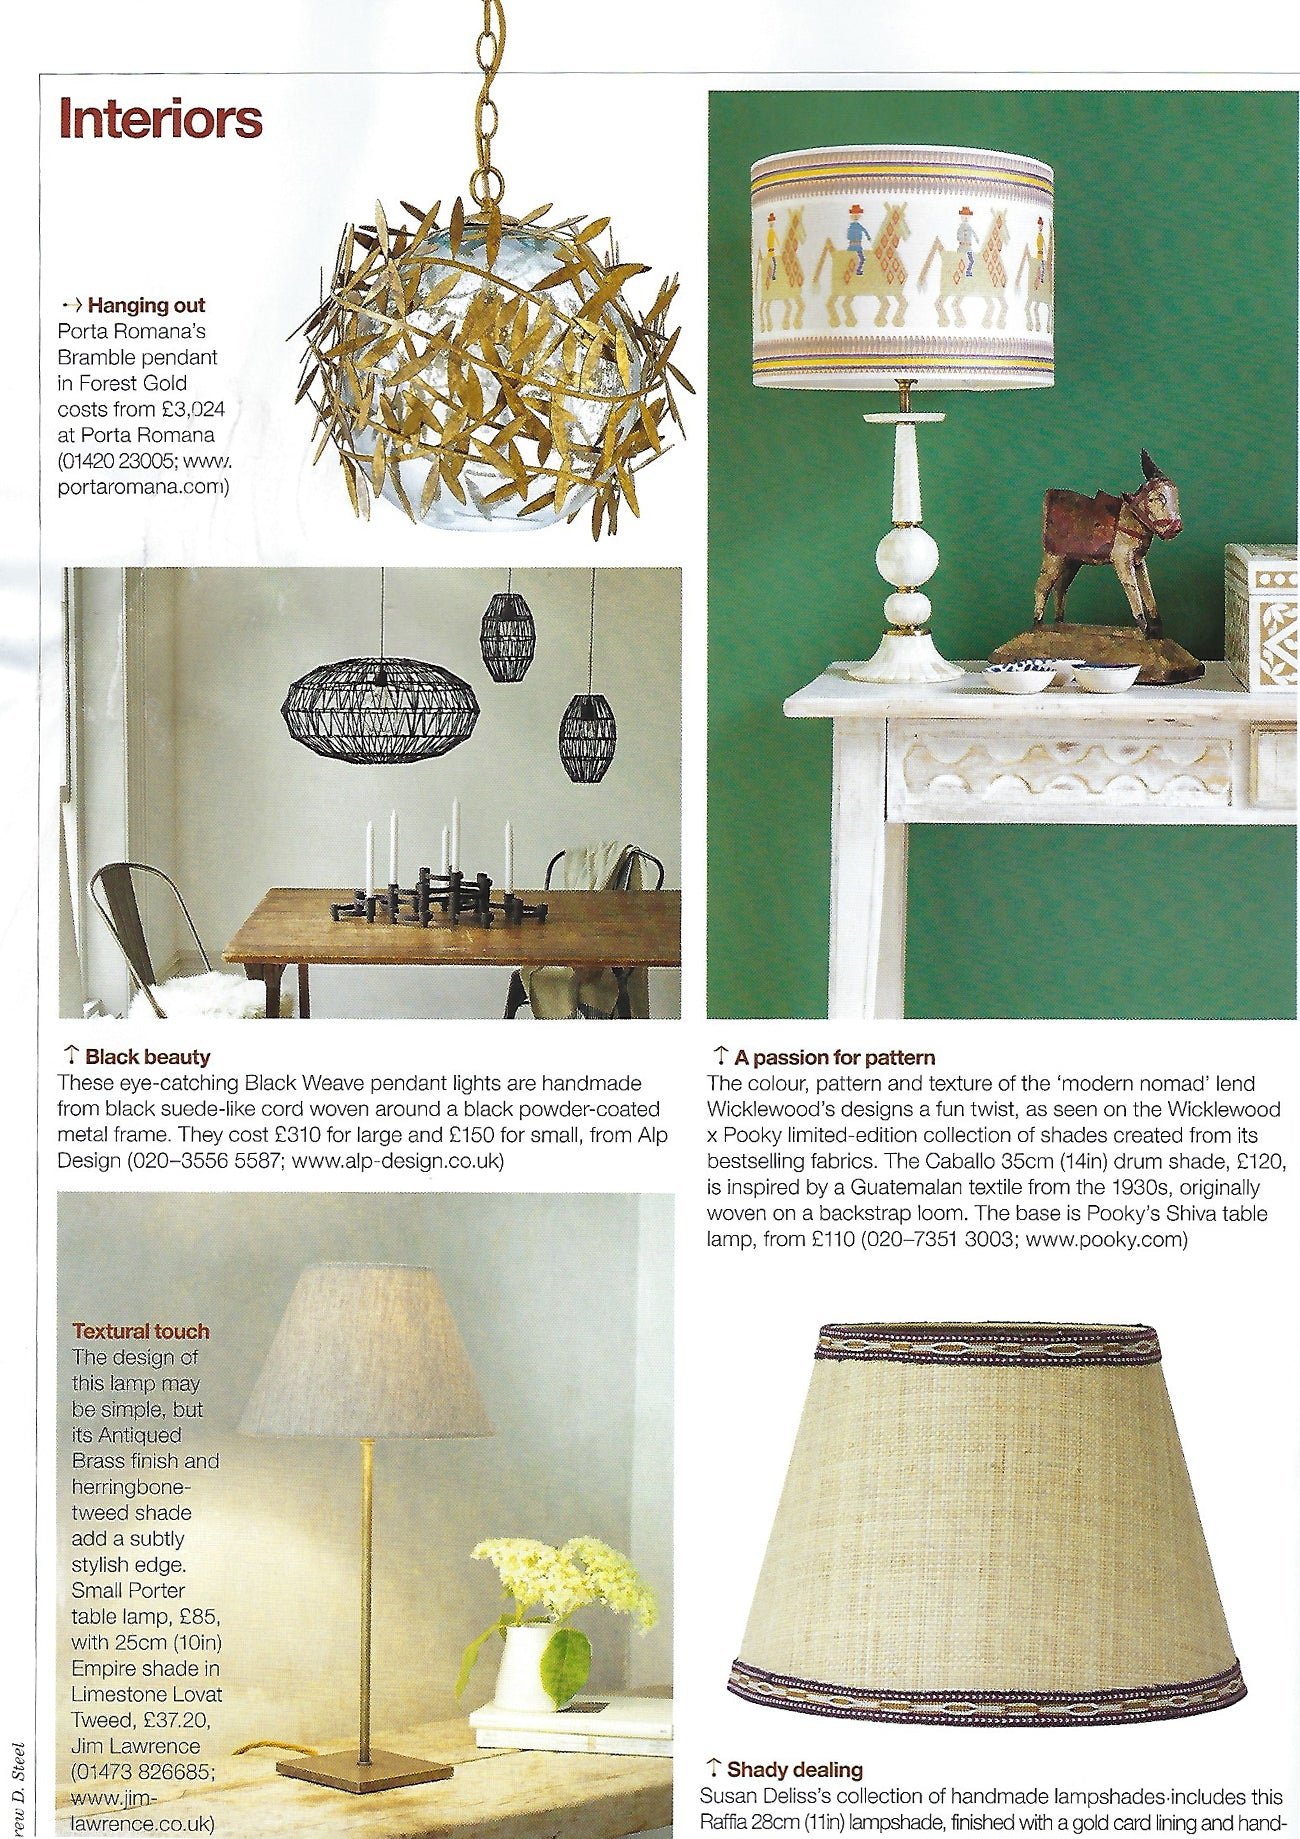 Country Lifemagazine features Wicklewood lampshades in collaboration with Pooky on their February 2019 issue